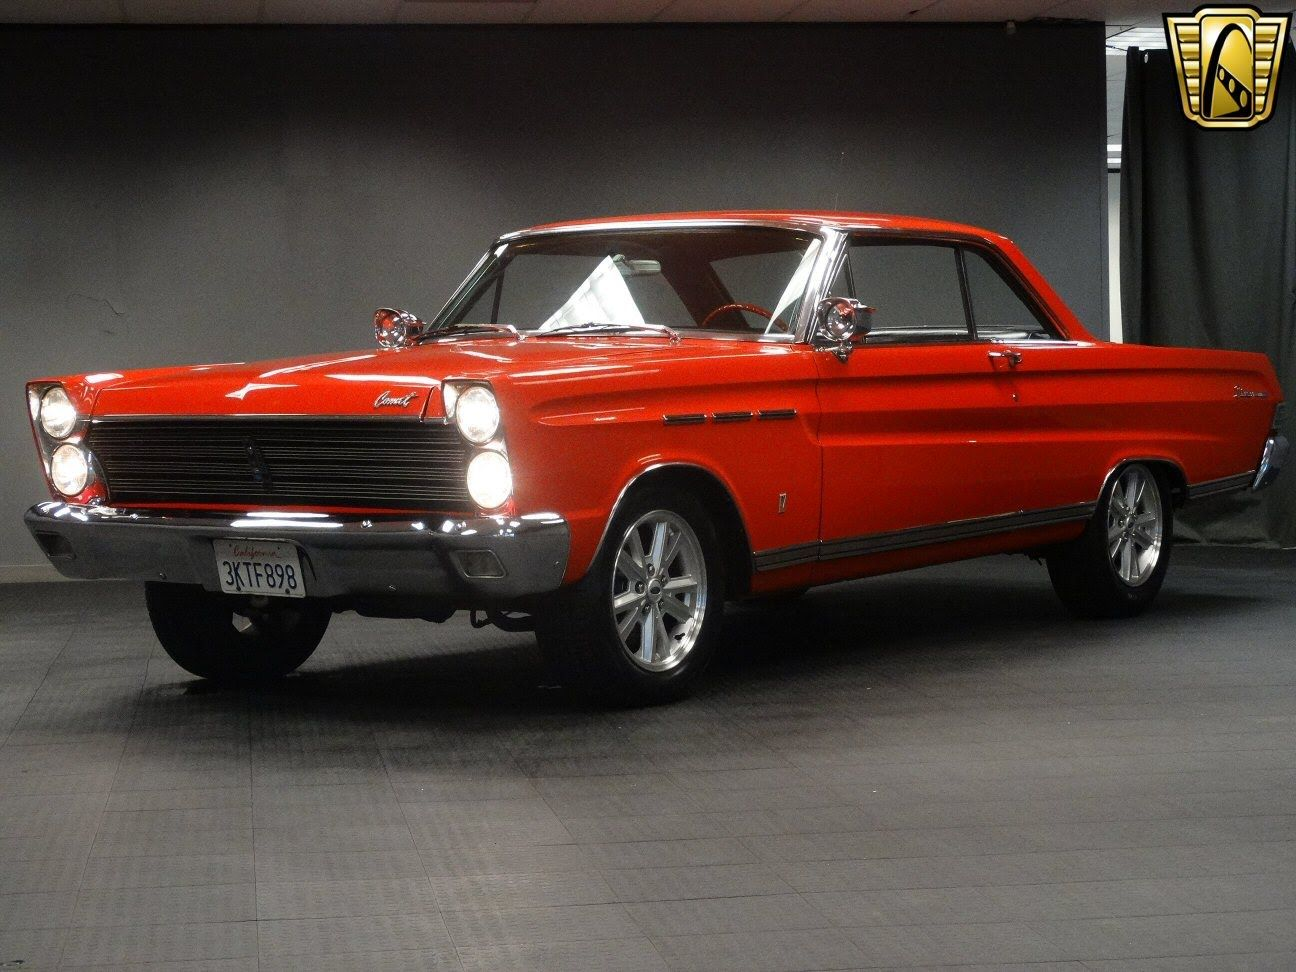 1965 Mercury Comet Caliente Stock#540-DET | Classic Cars ...